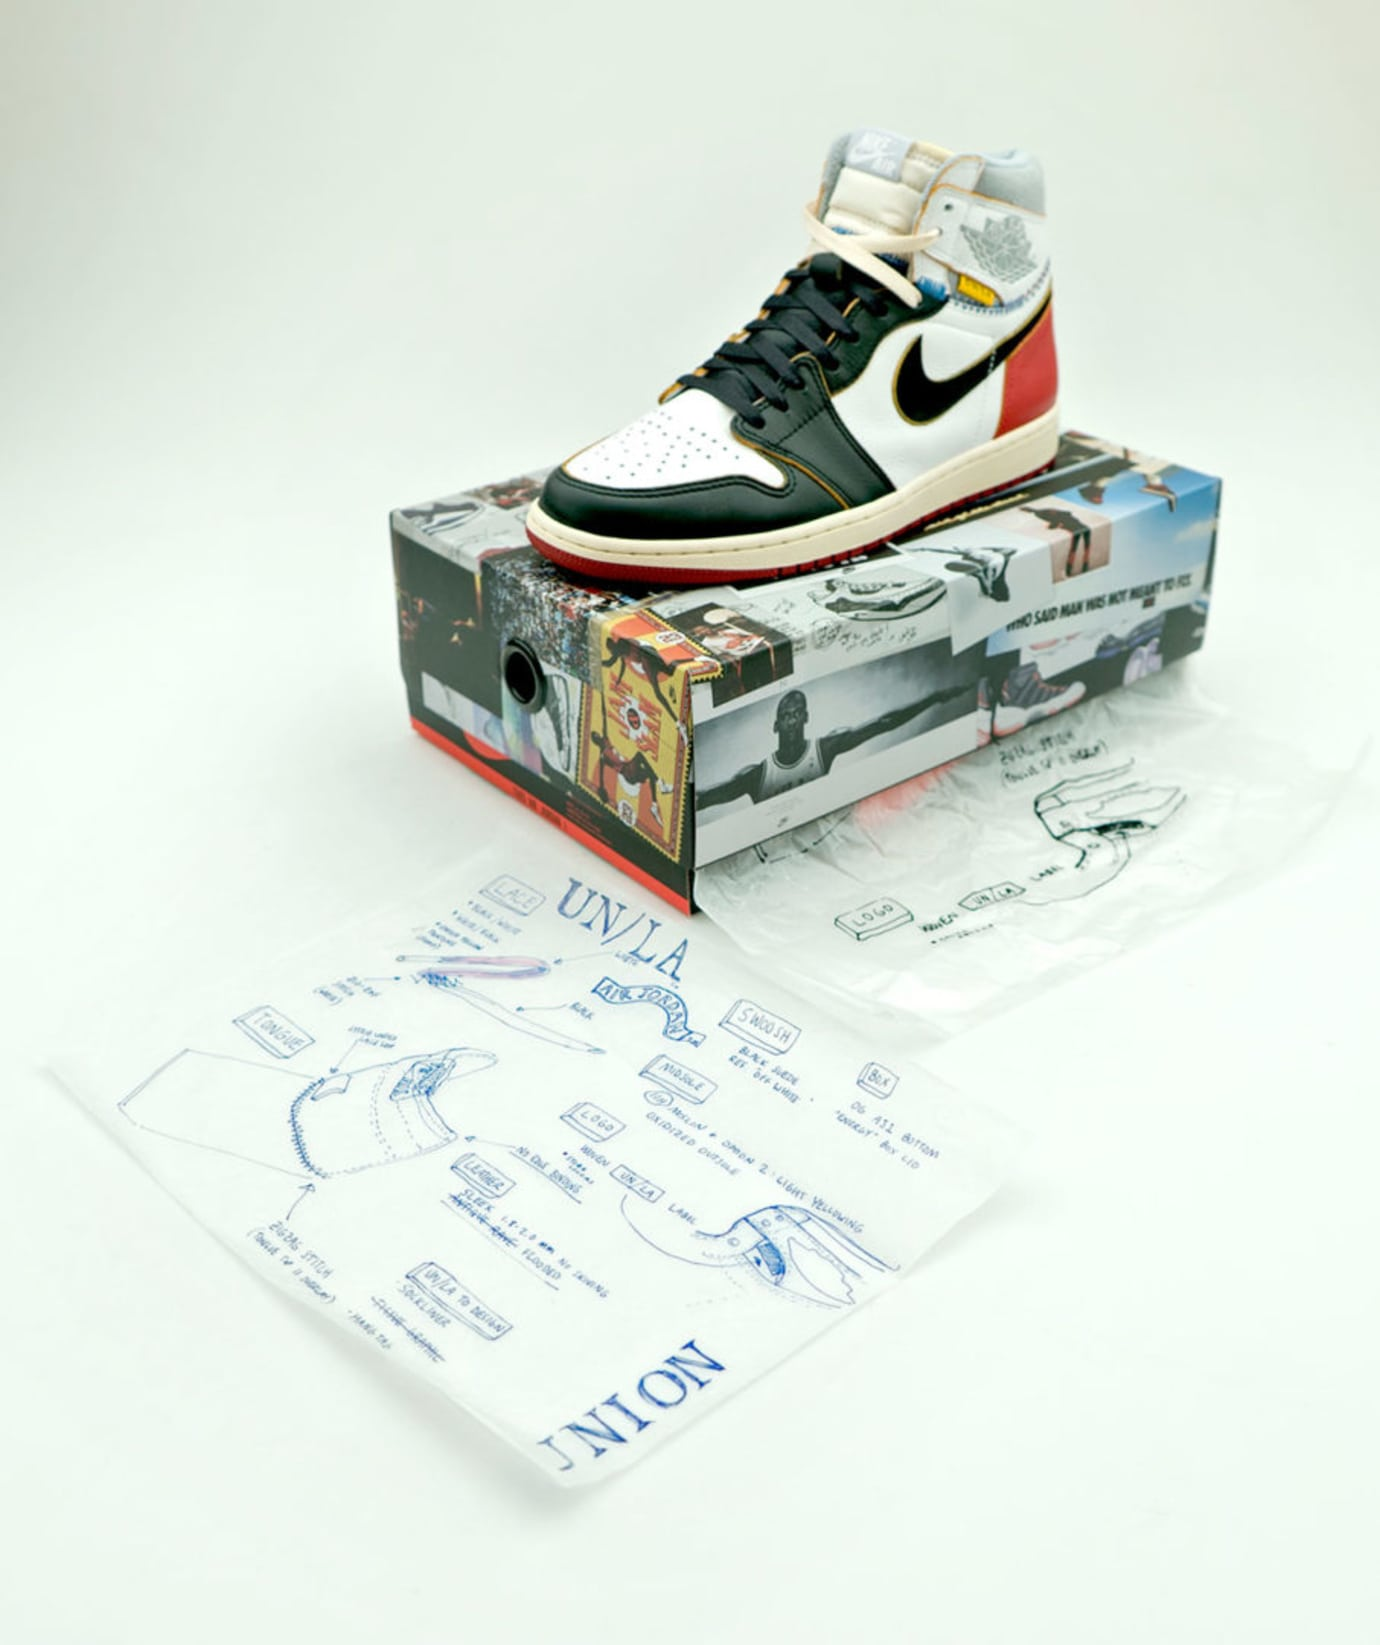 huge discount d8c0e 56b36 It Took Nine Attempts to Nail Down the Union x Air Jordan 1 ...